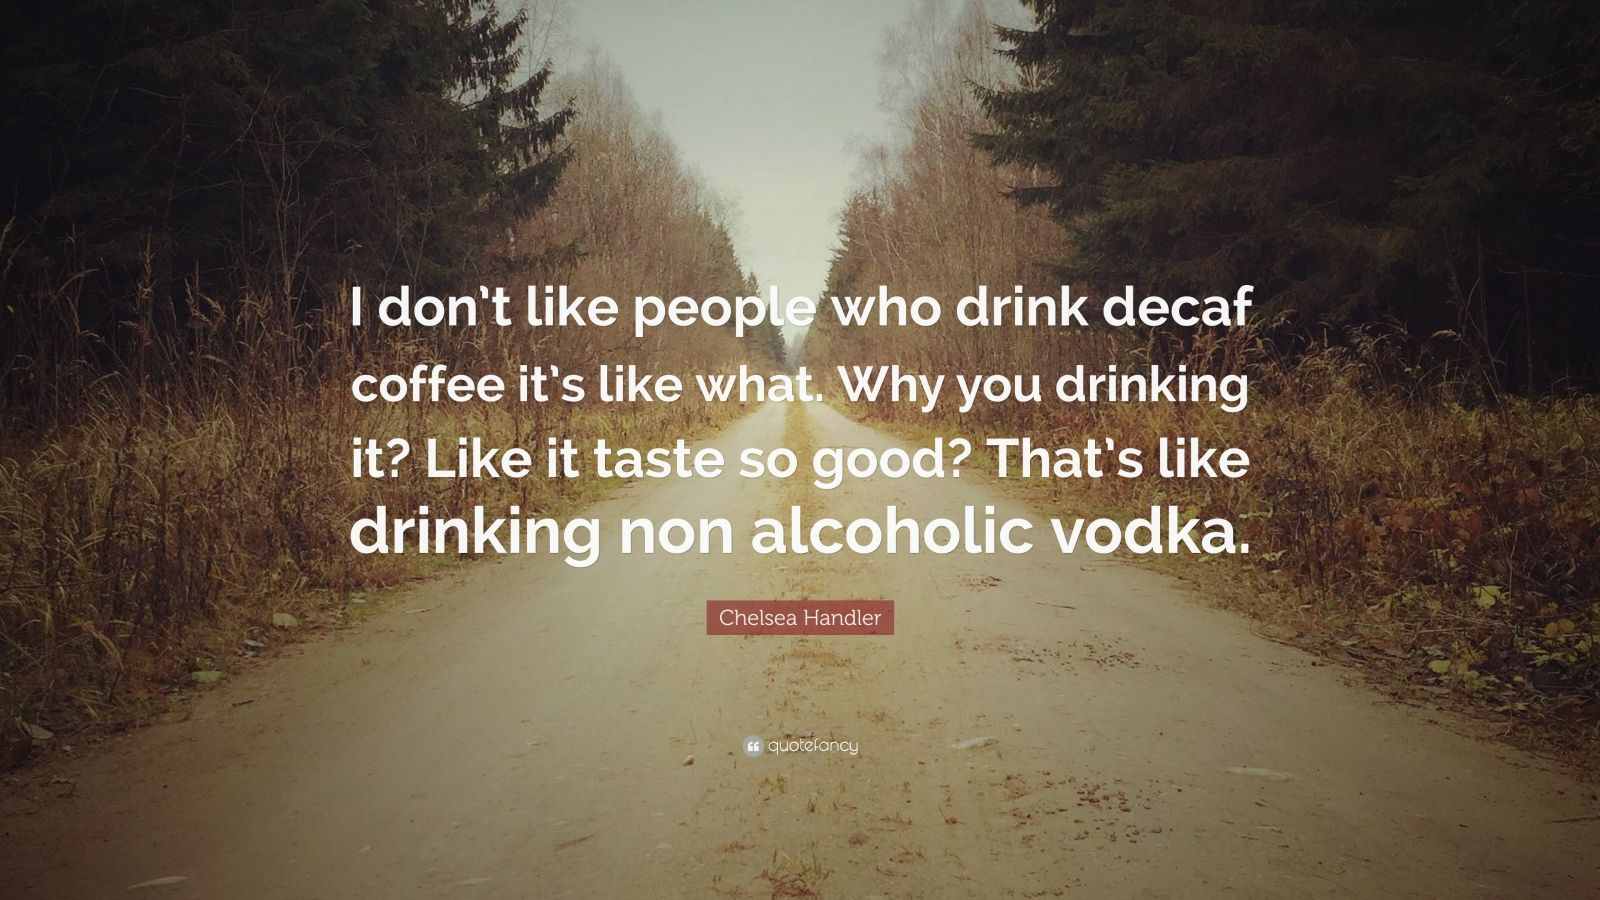 """Chelsea Handler Quote: """"I don't like people who drink decaf coffee it's like what. Why you drinking it? Like it taste so good? That's like drinking non alcoholic vodka."""""""